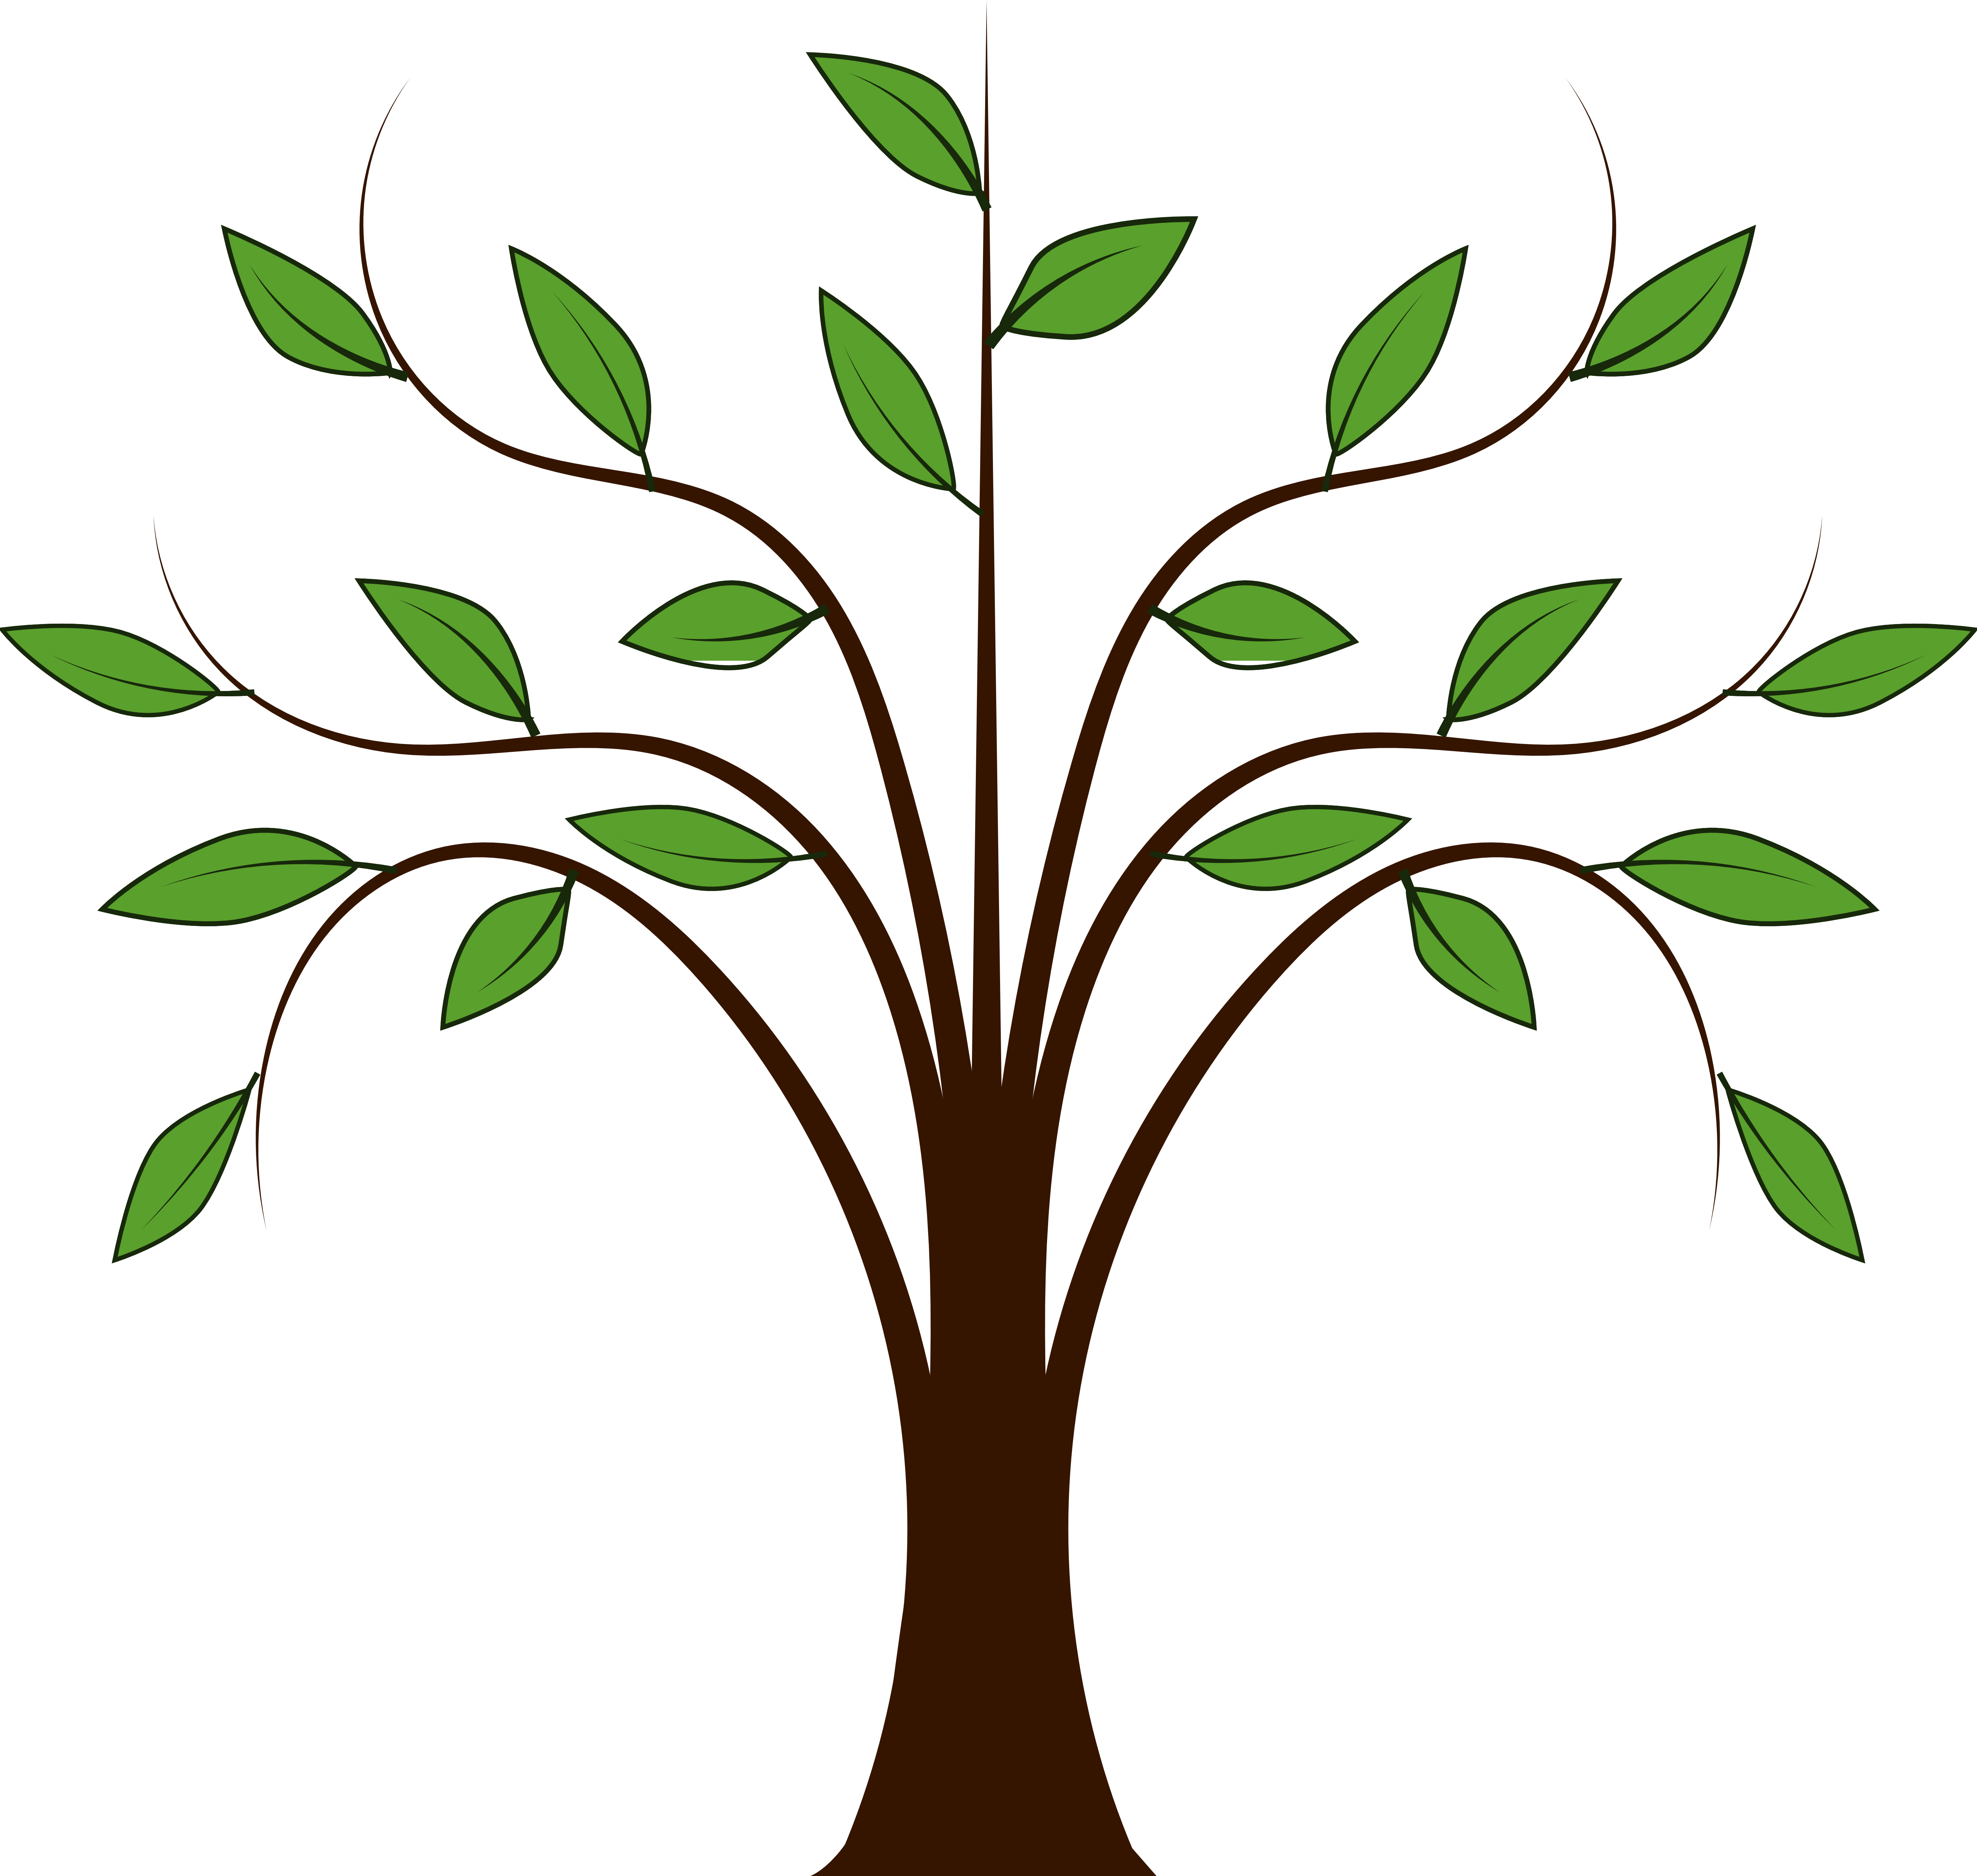 clipart tree with branches - photo #6